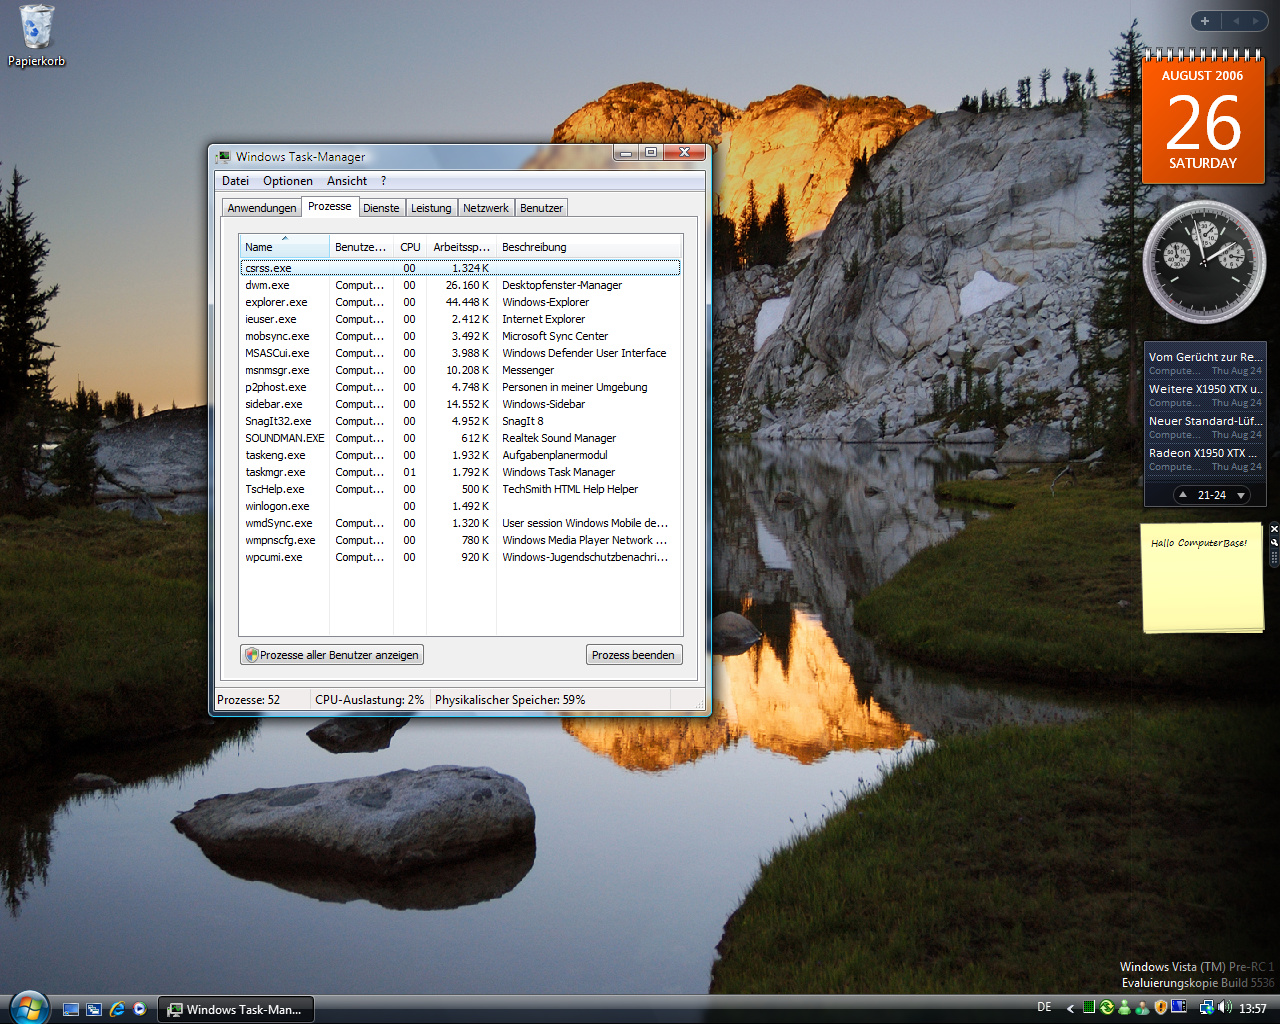 Windows Vista Build 5536 - Taskmanager